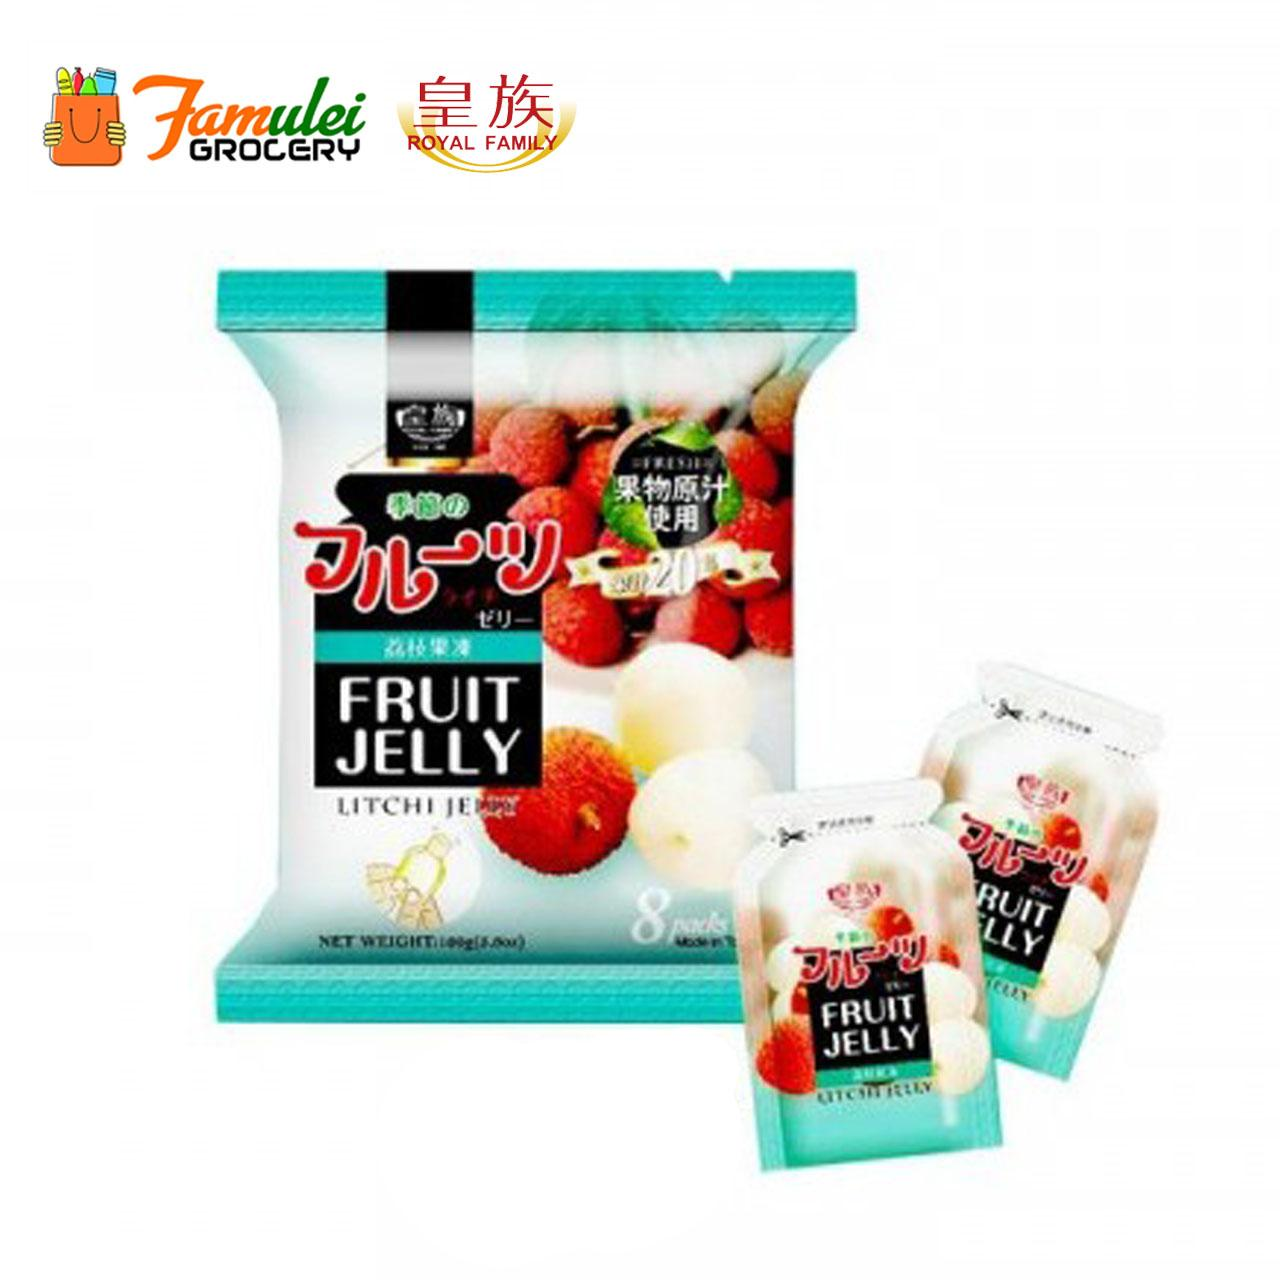 Royal Family Fruit Jelly Lychee Flavor 160g